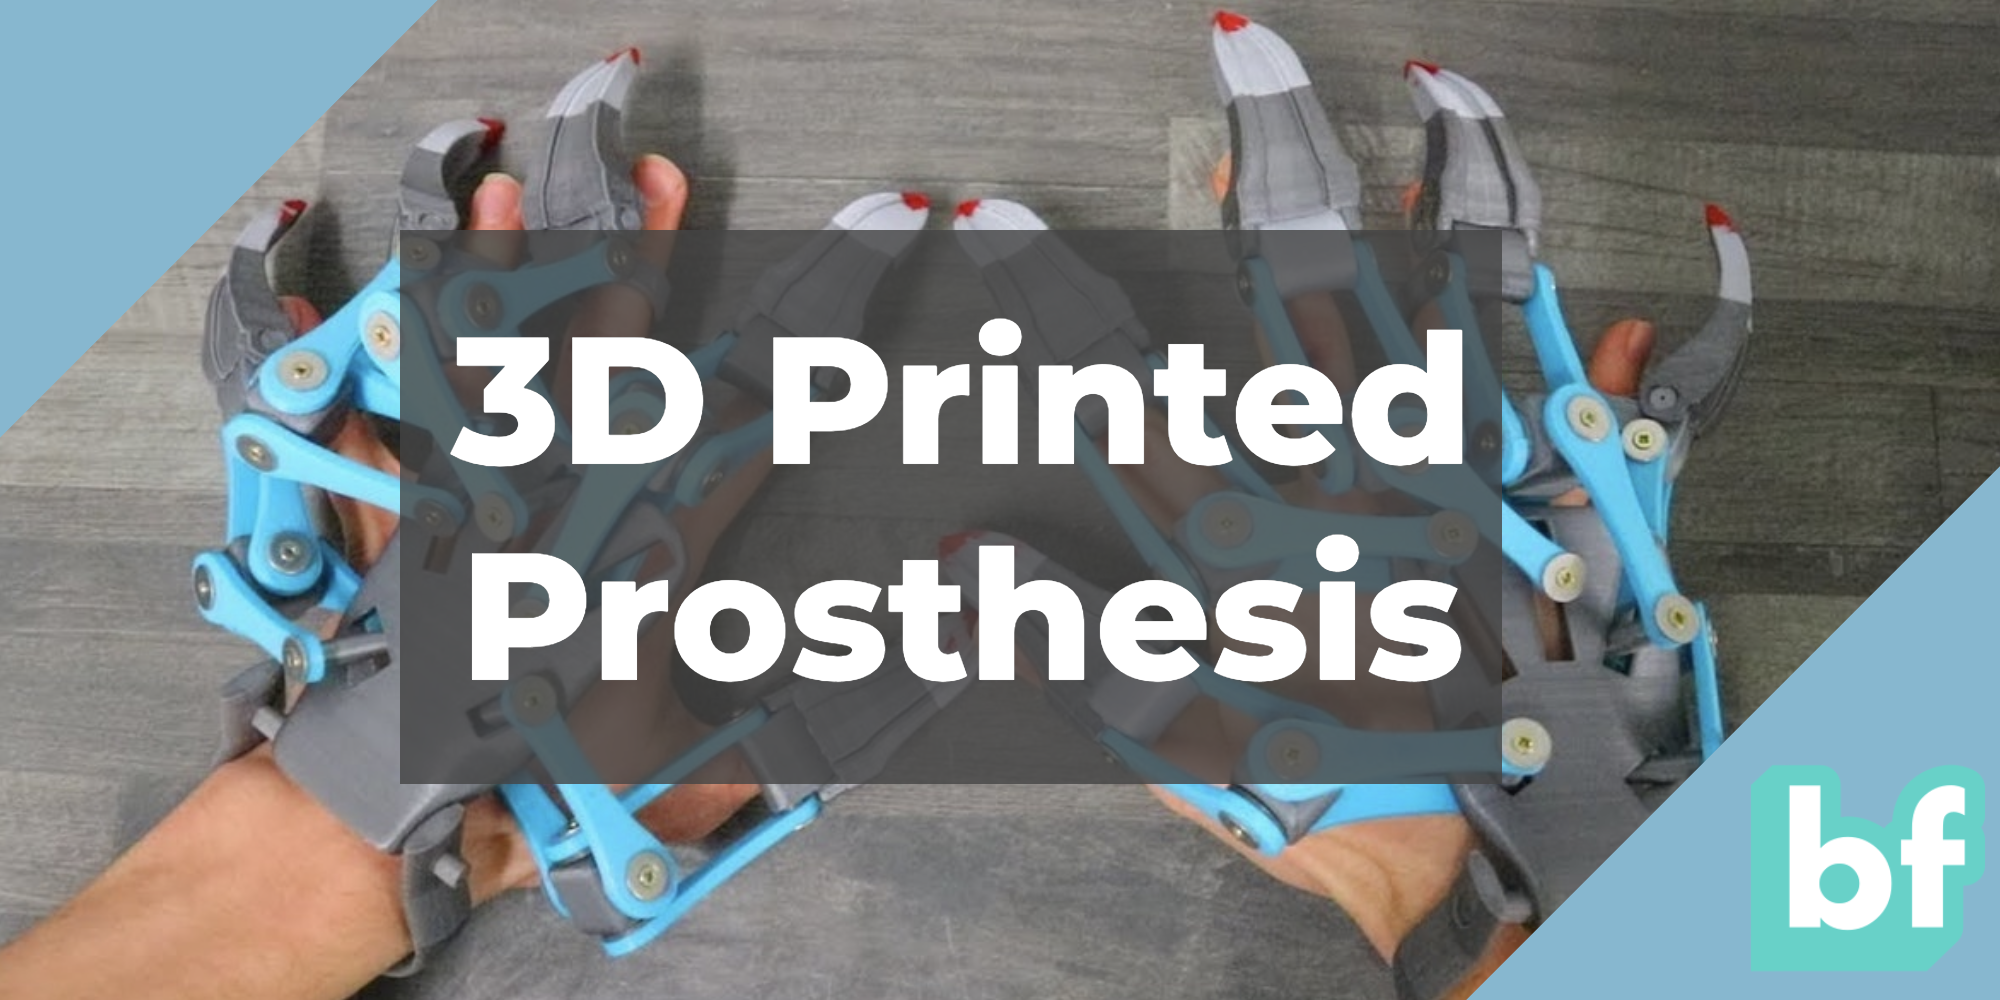 3D printed prosthesis